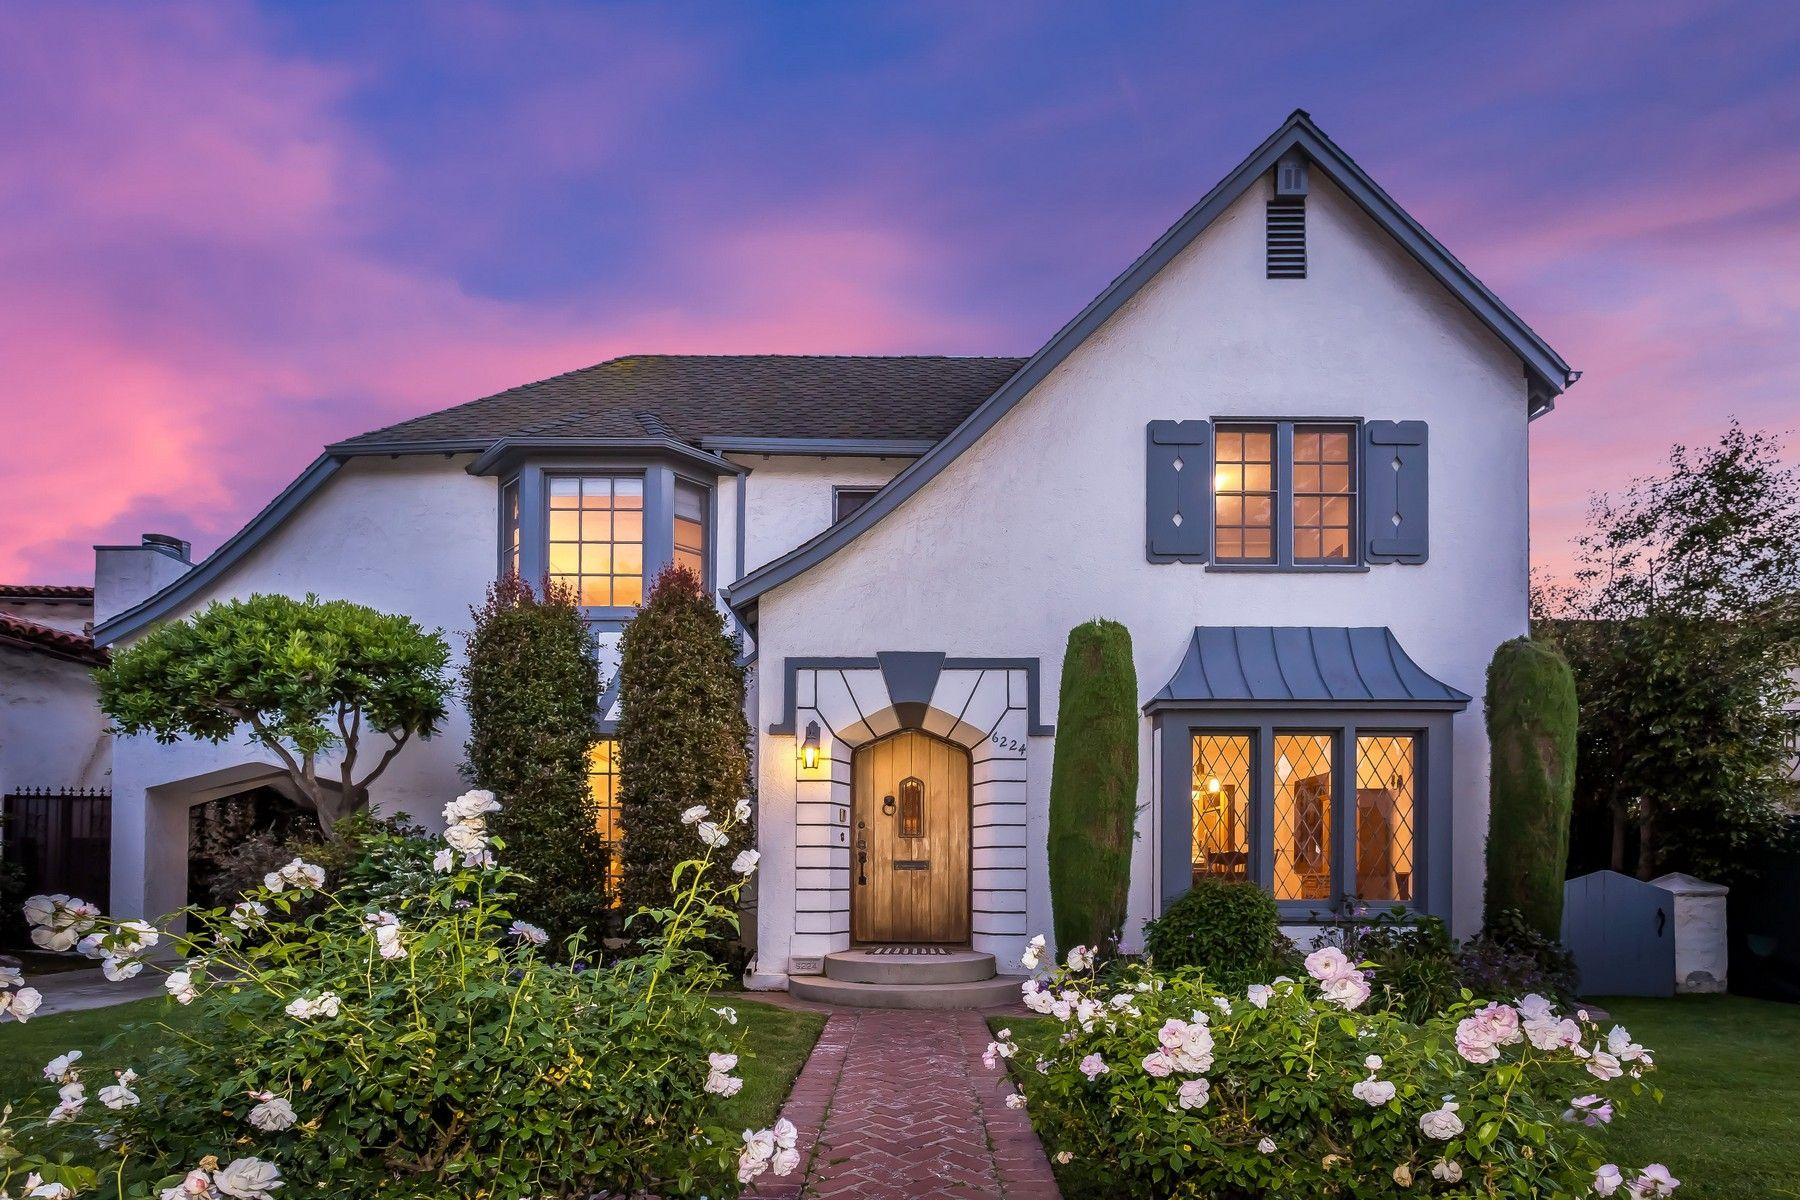 Your Home Is Your Castle Six Classic Tudor Inspired Homes Tudor Style Homes Inspired Homes Tudor Style